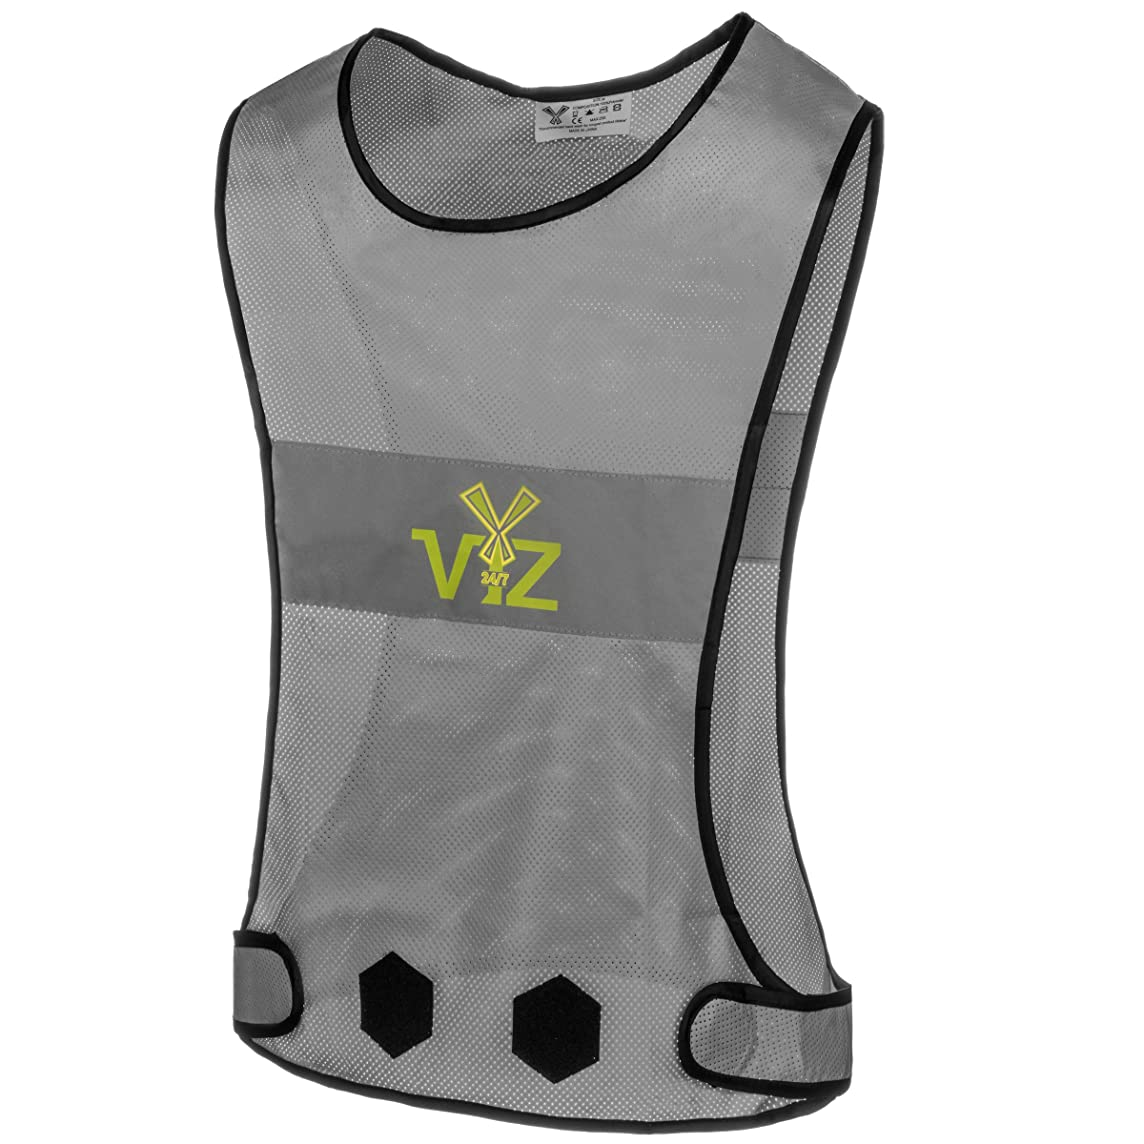 247 Viz Blaze - Reflective Vest 360 - Be Seen from All Angles While Running, Walking Jogging, Cycling, Horseback Ridding & on a Motorcycle, High Visibility with Full Reflective Surface Area